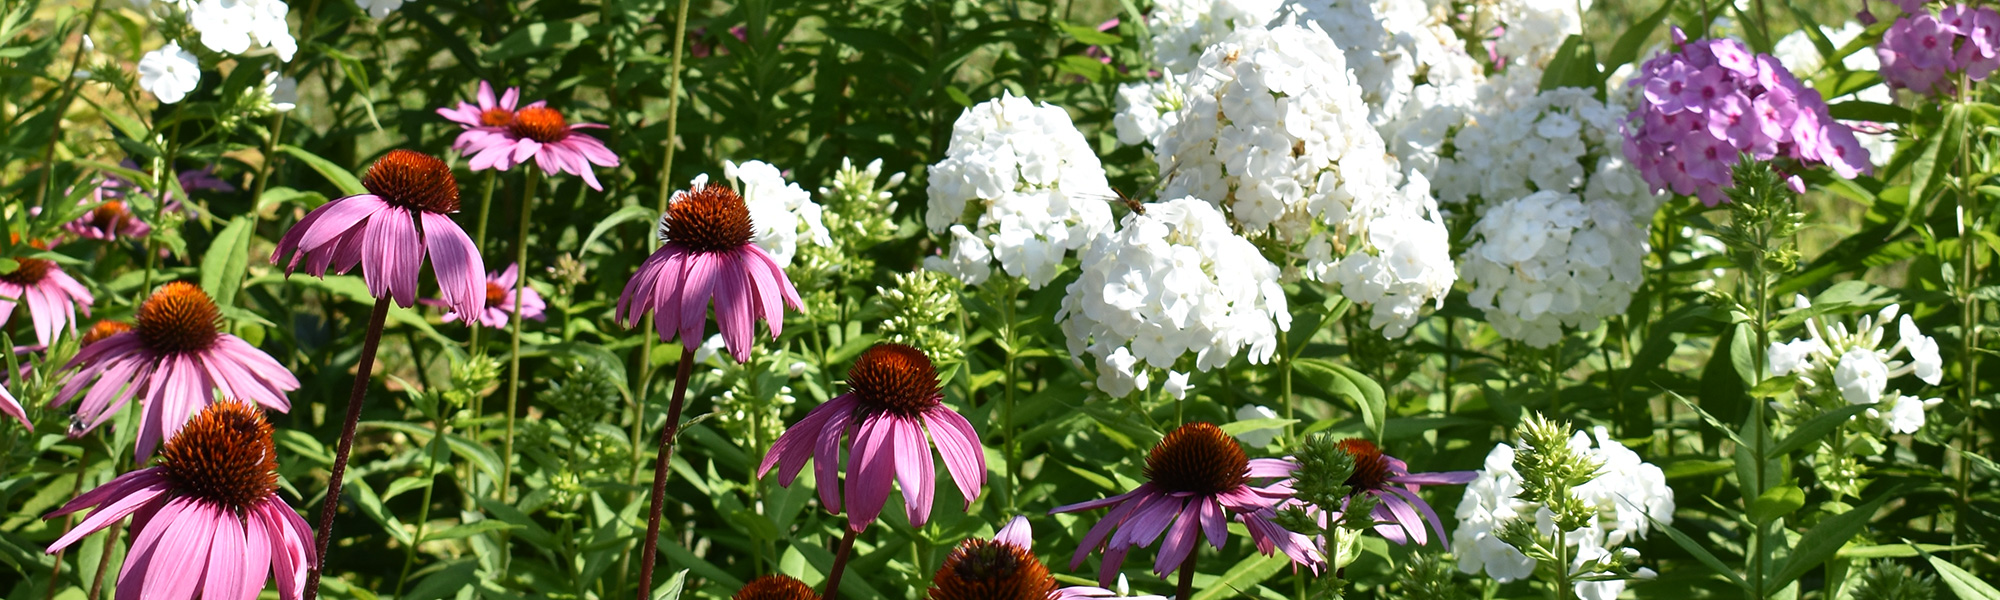 Pink echinacea and white phlox in garden